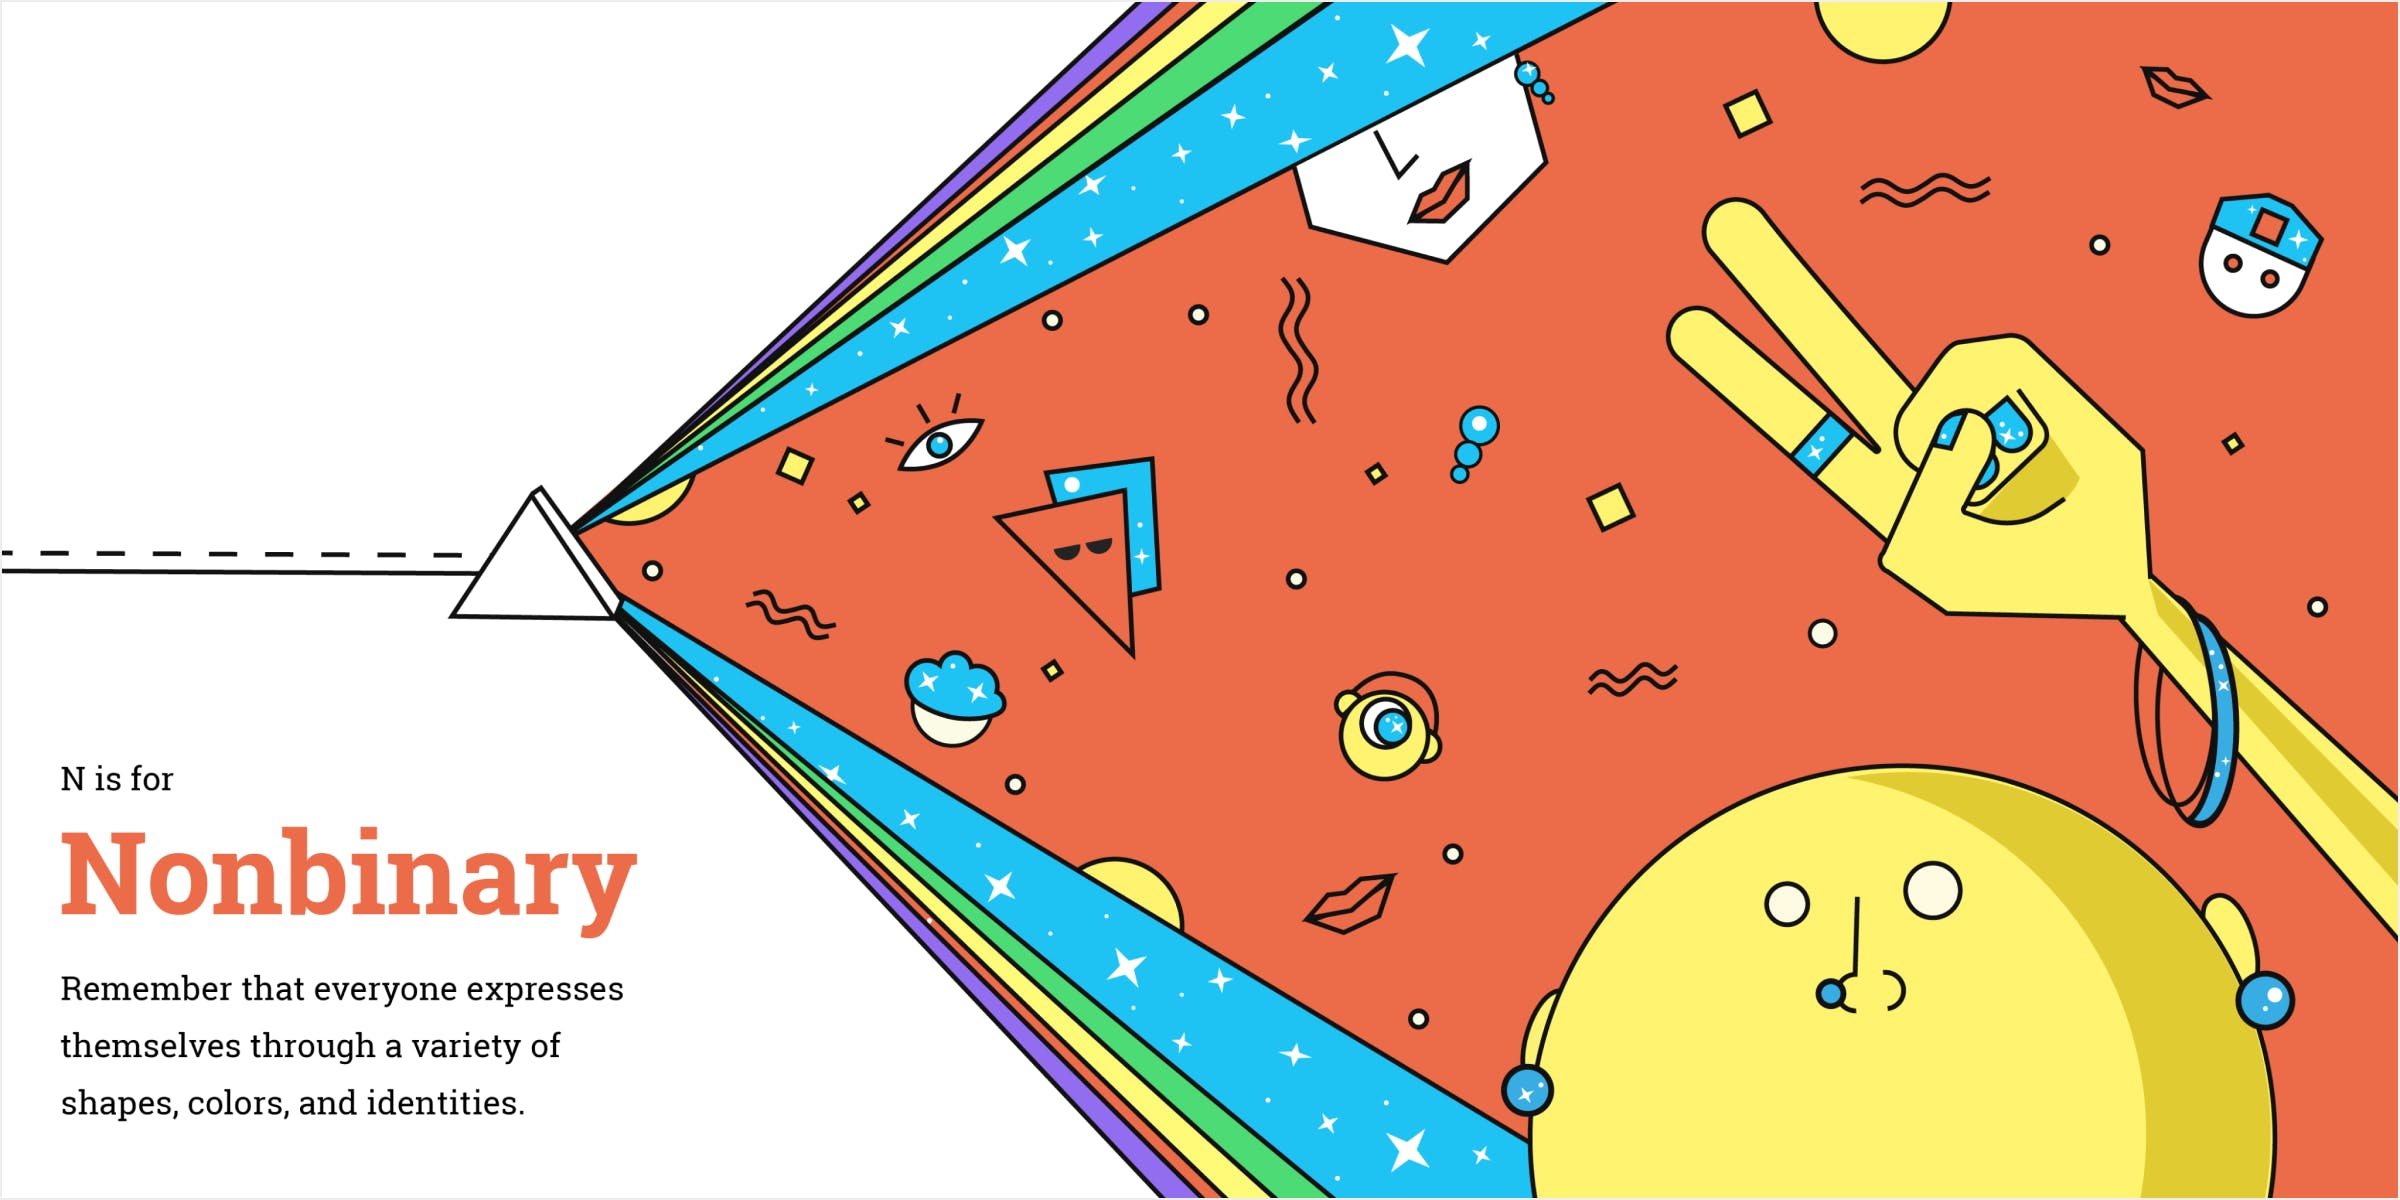 Mockup of Nonbinary spread in a book. Prism expanding to reveal characters constructed from abstract shapes.